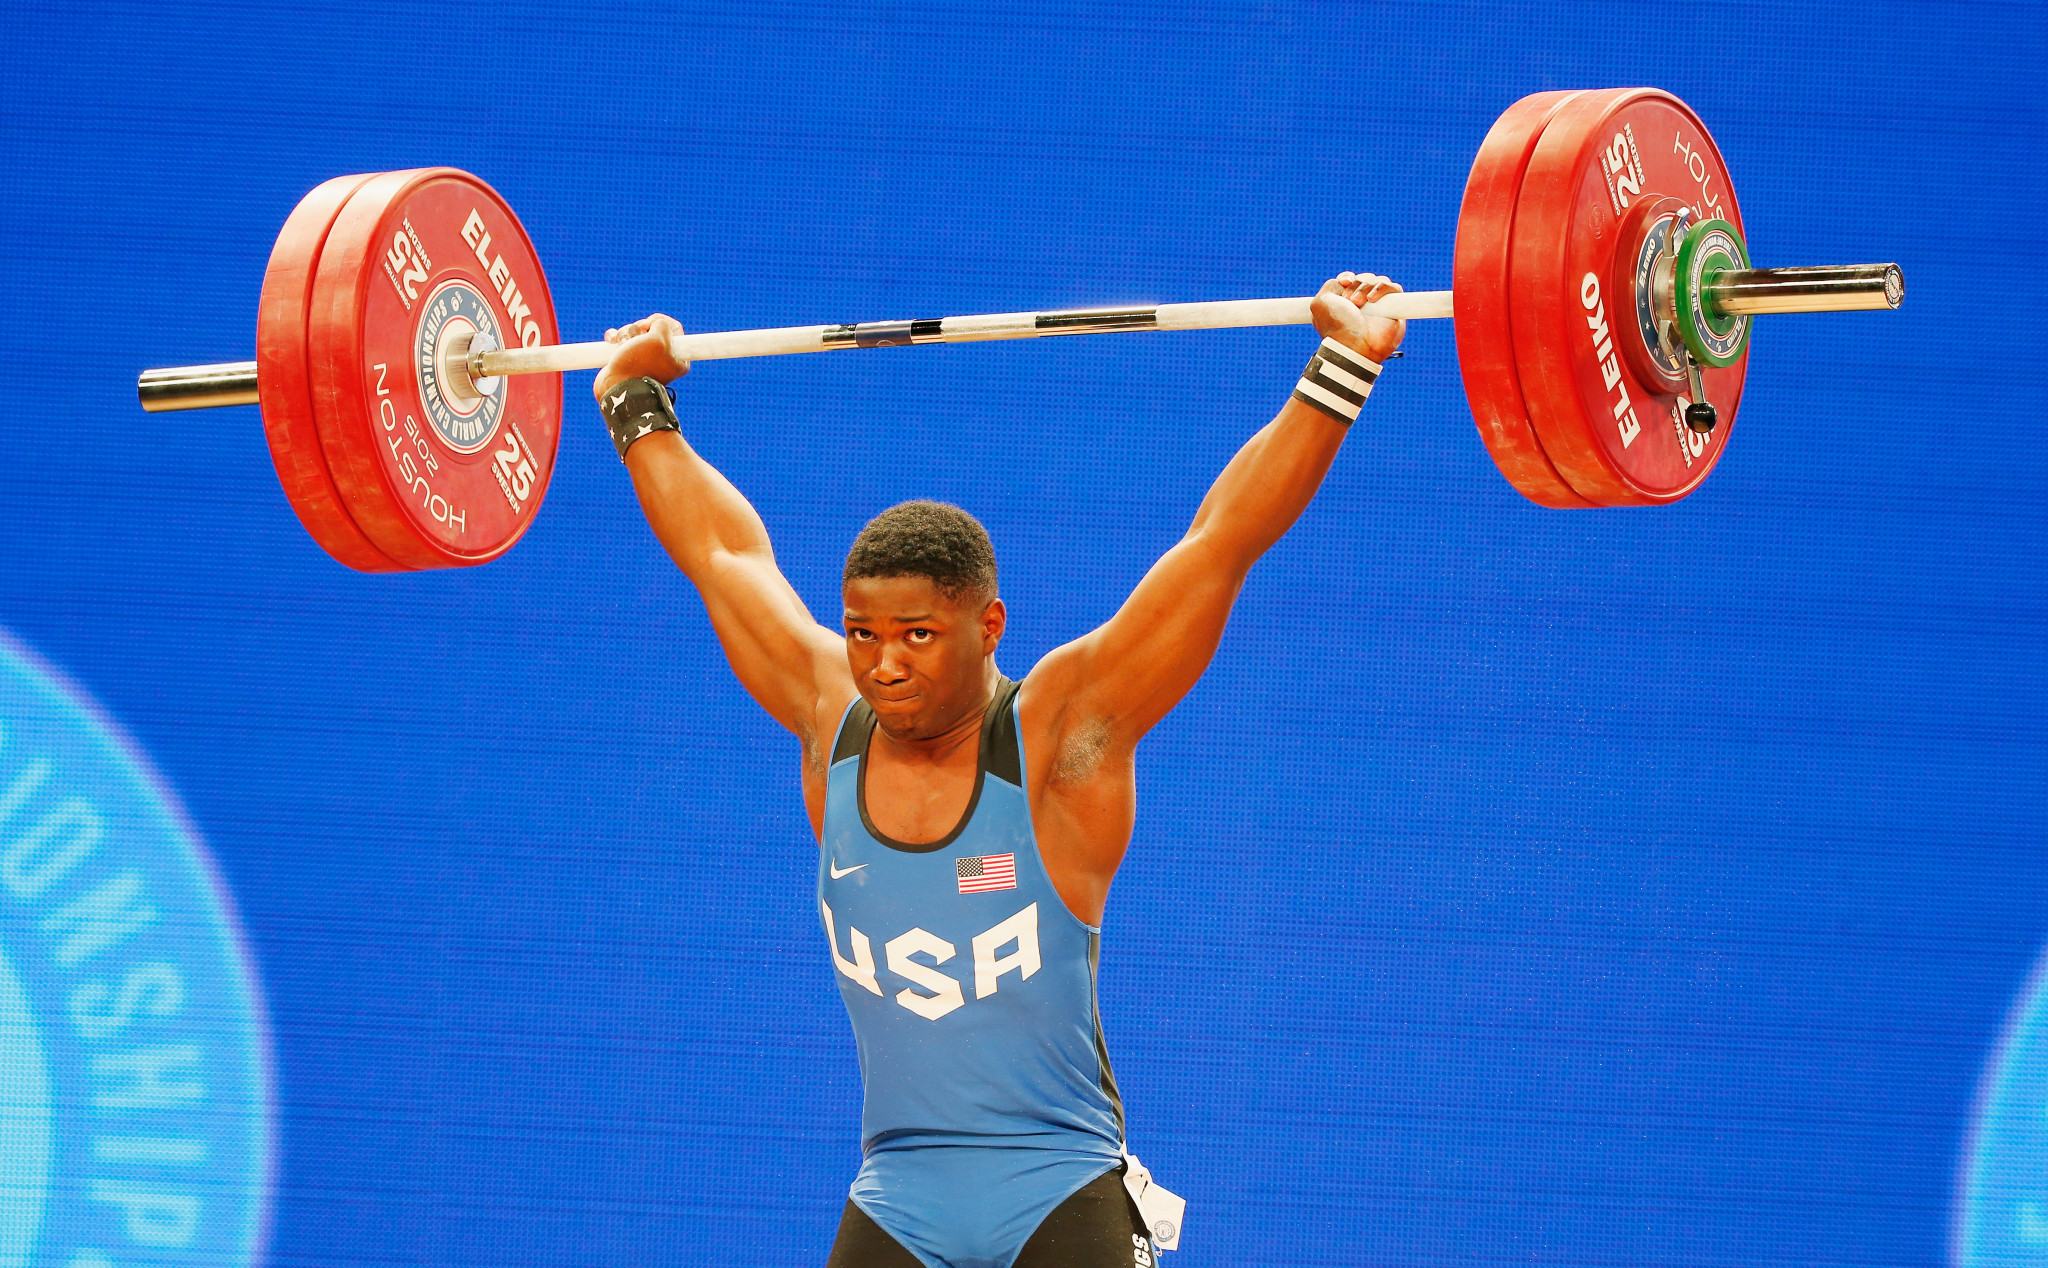 Some of the best American weightlifters are expected to take part in the virtual Nike American Open Series 3 ©Getty Images